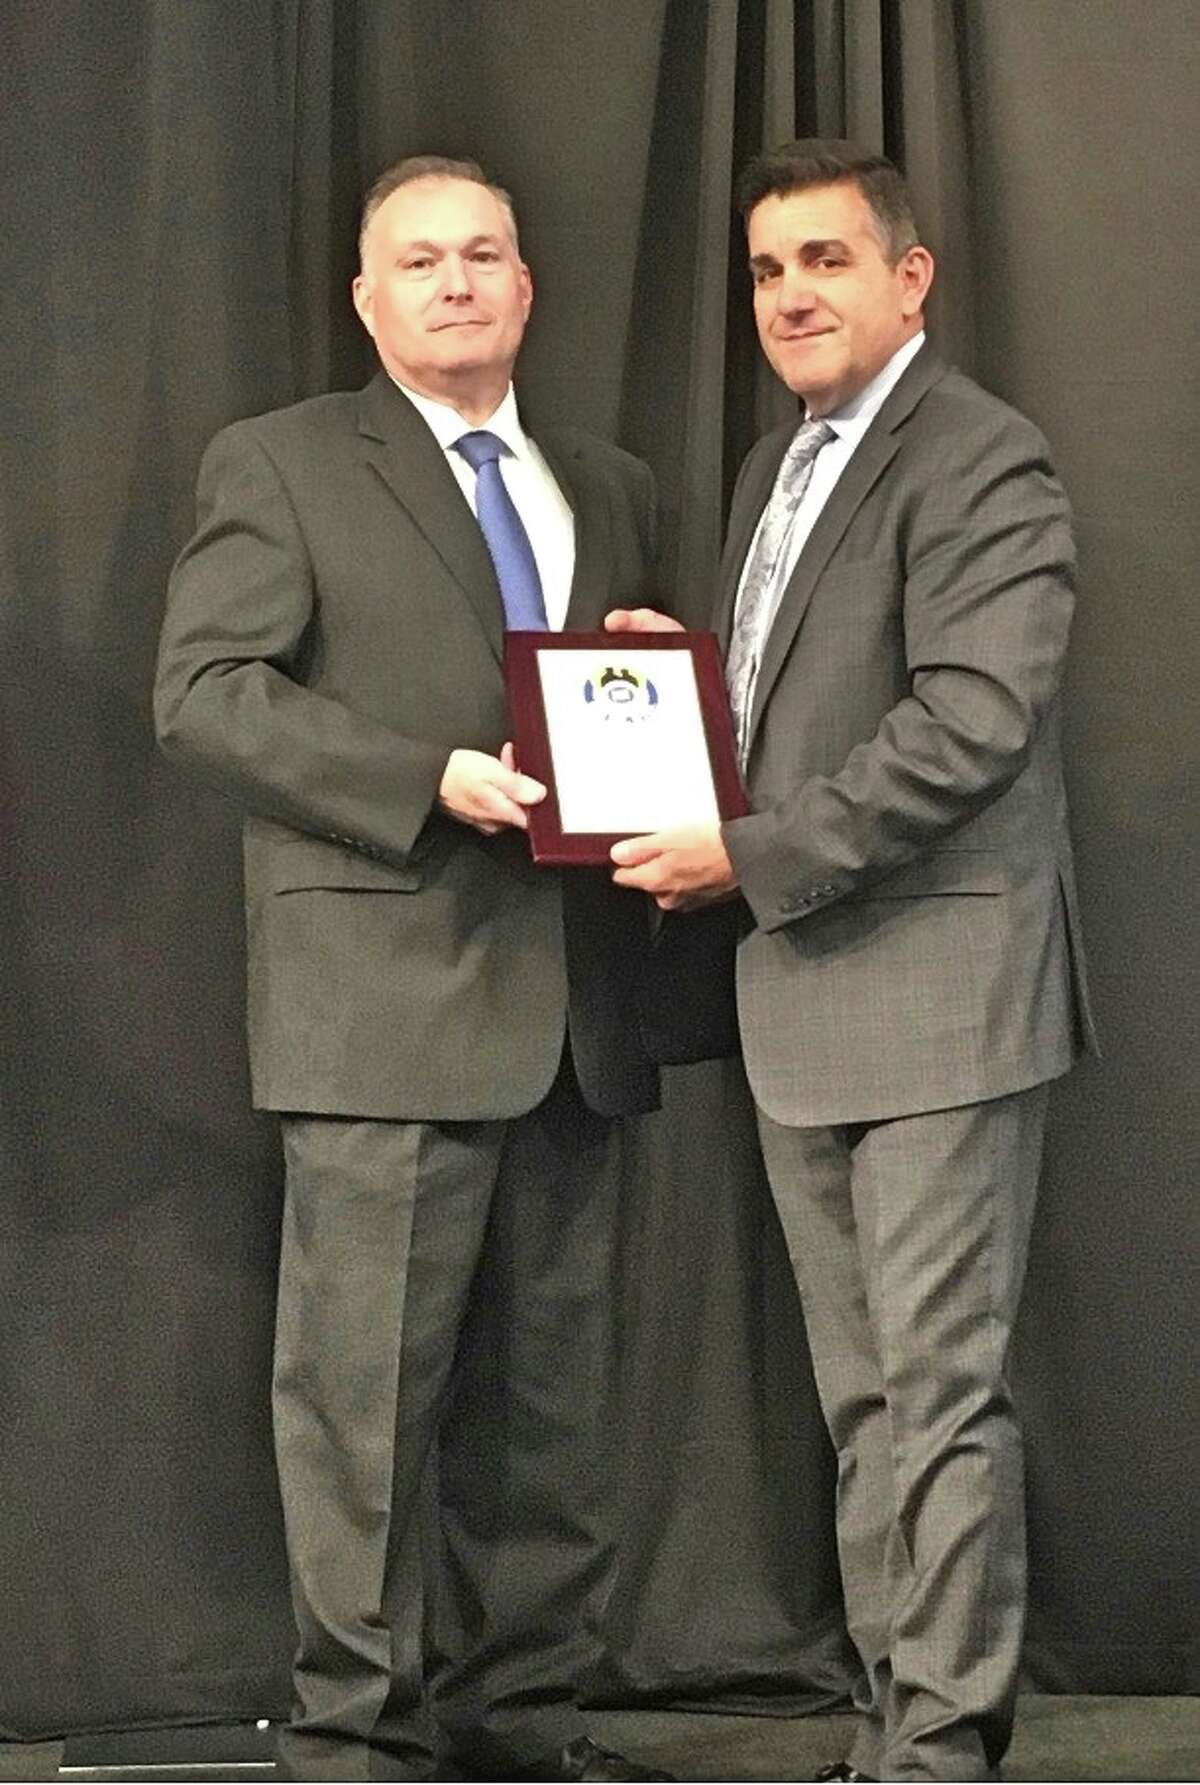 Chief Michael Lombardo, left, accepts a state Chiefs of Police Association award for officer wellness programs.